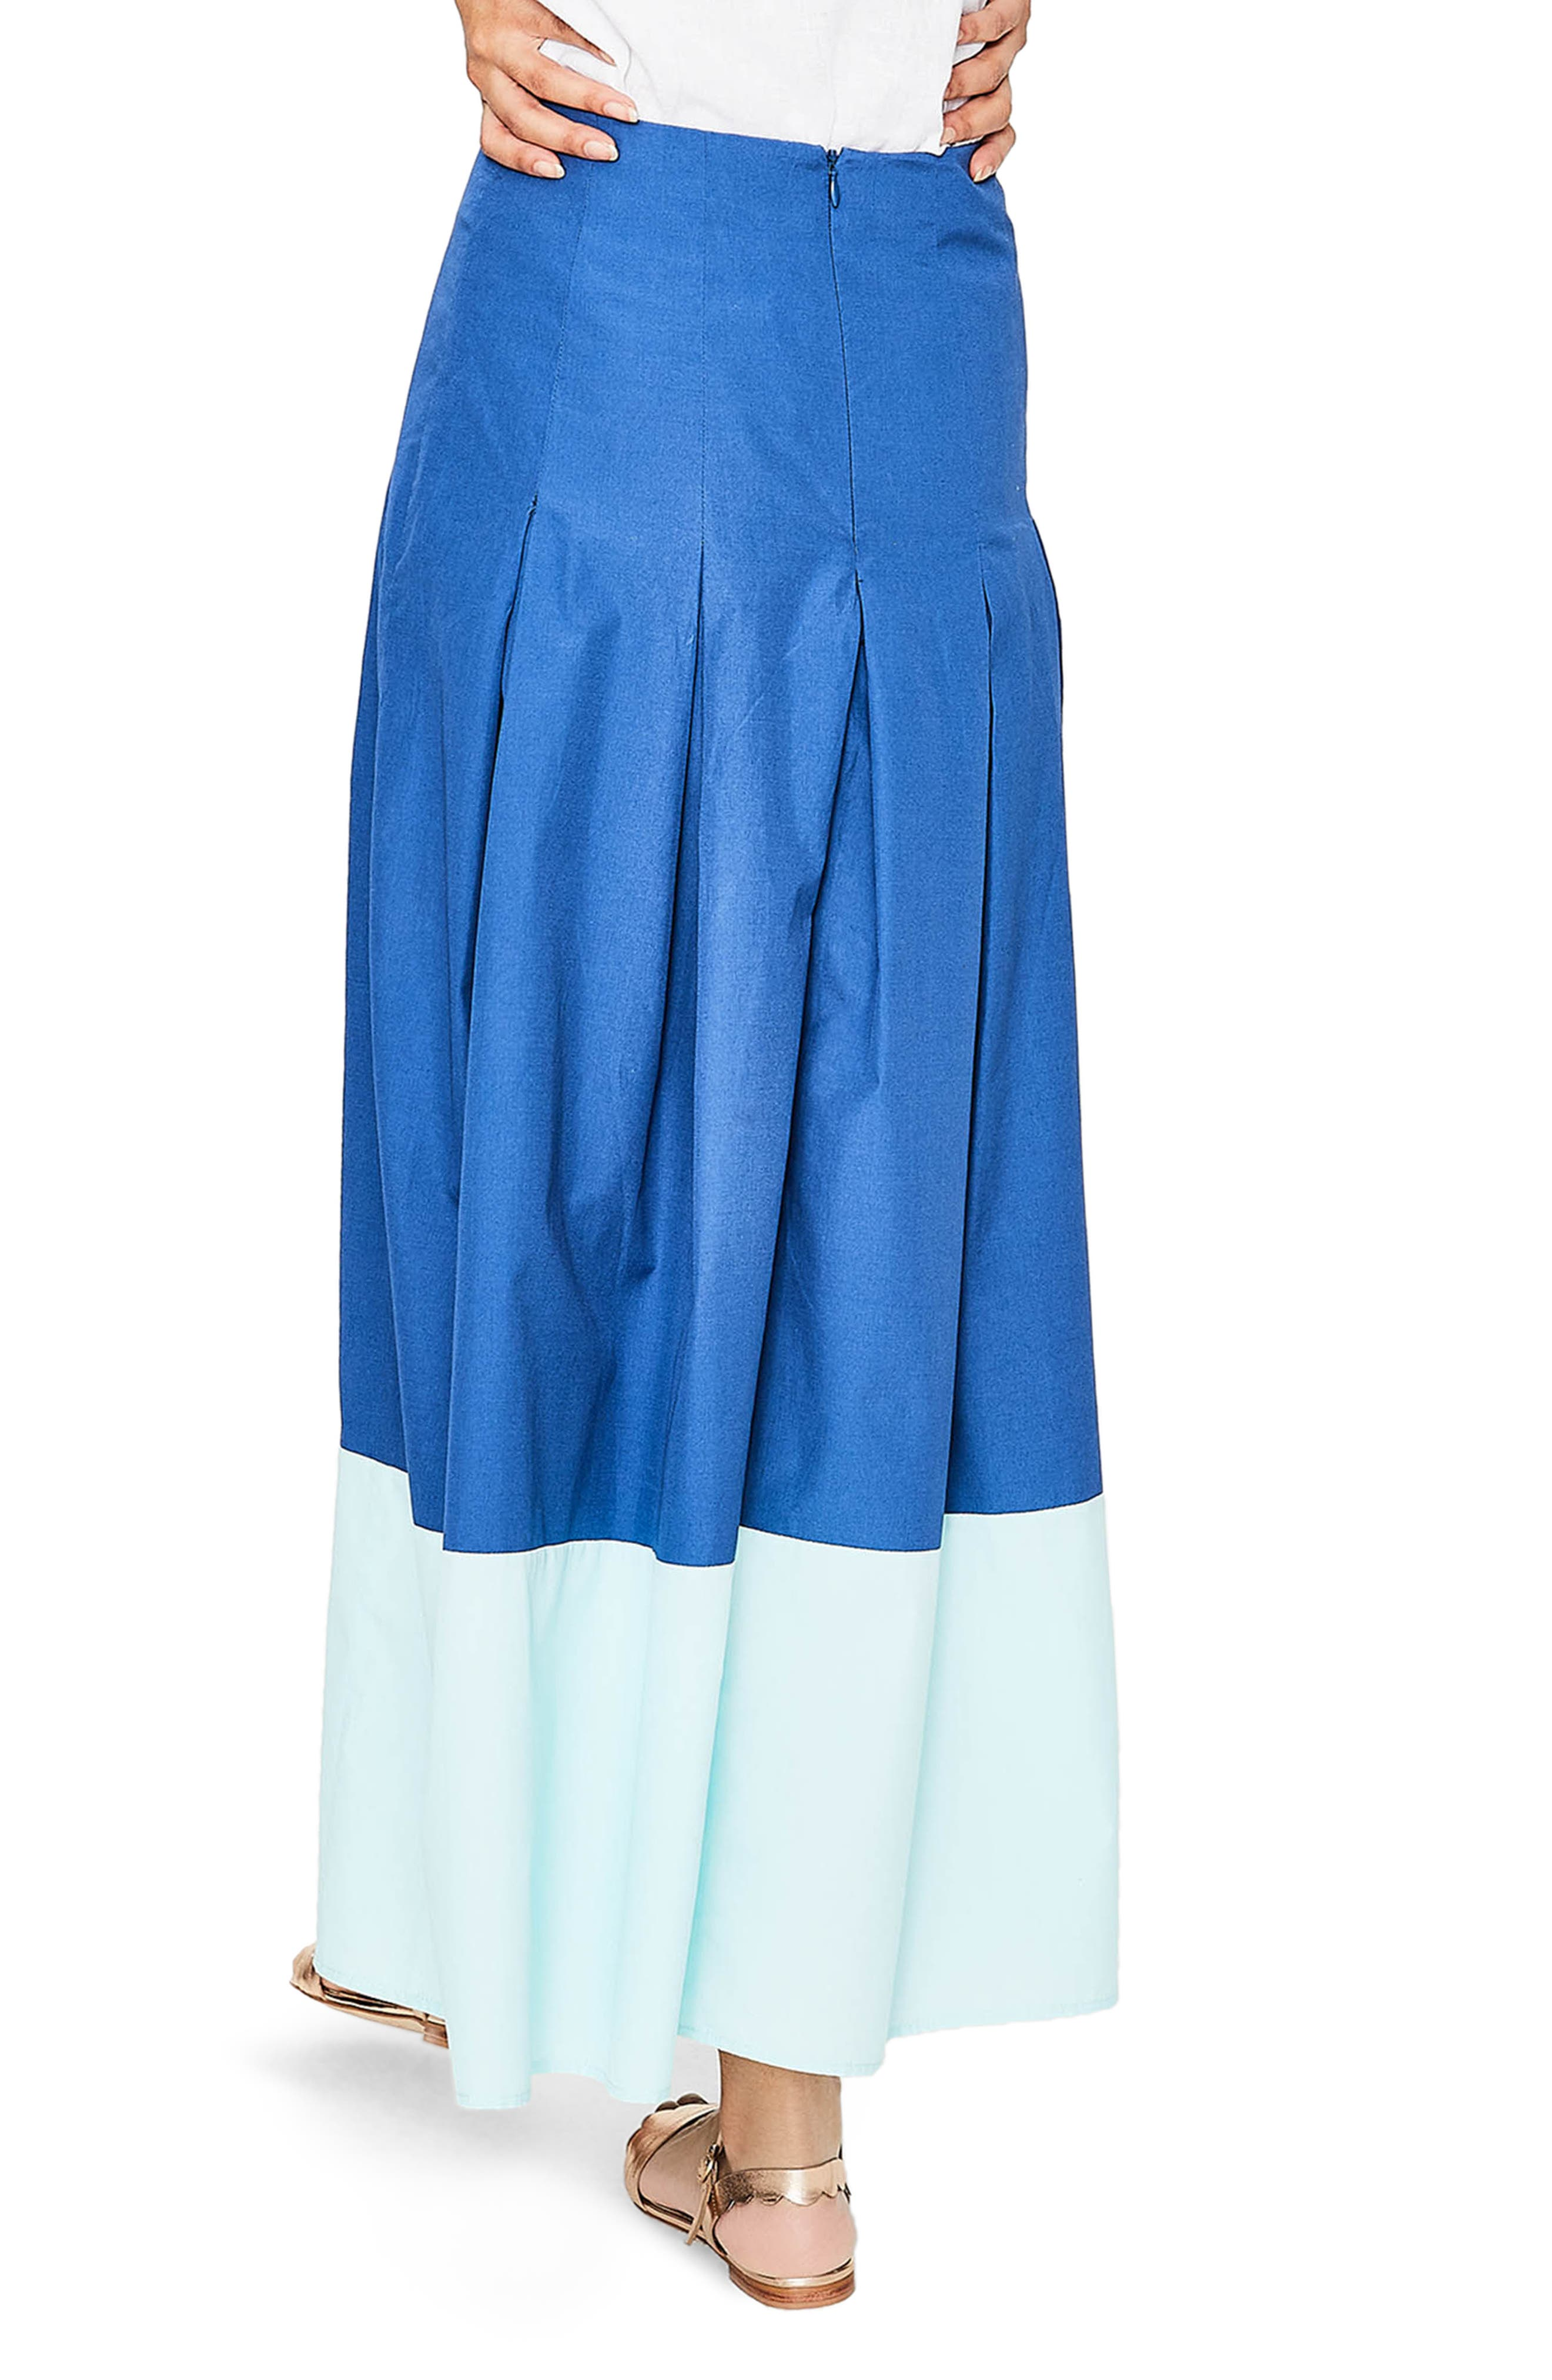 Beatrice Flare Midi Skirt,                             Alternate thumbnail 2, color,                             Riviera Blue W Rippl